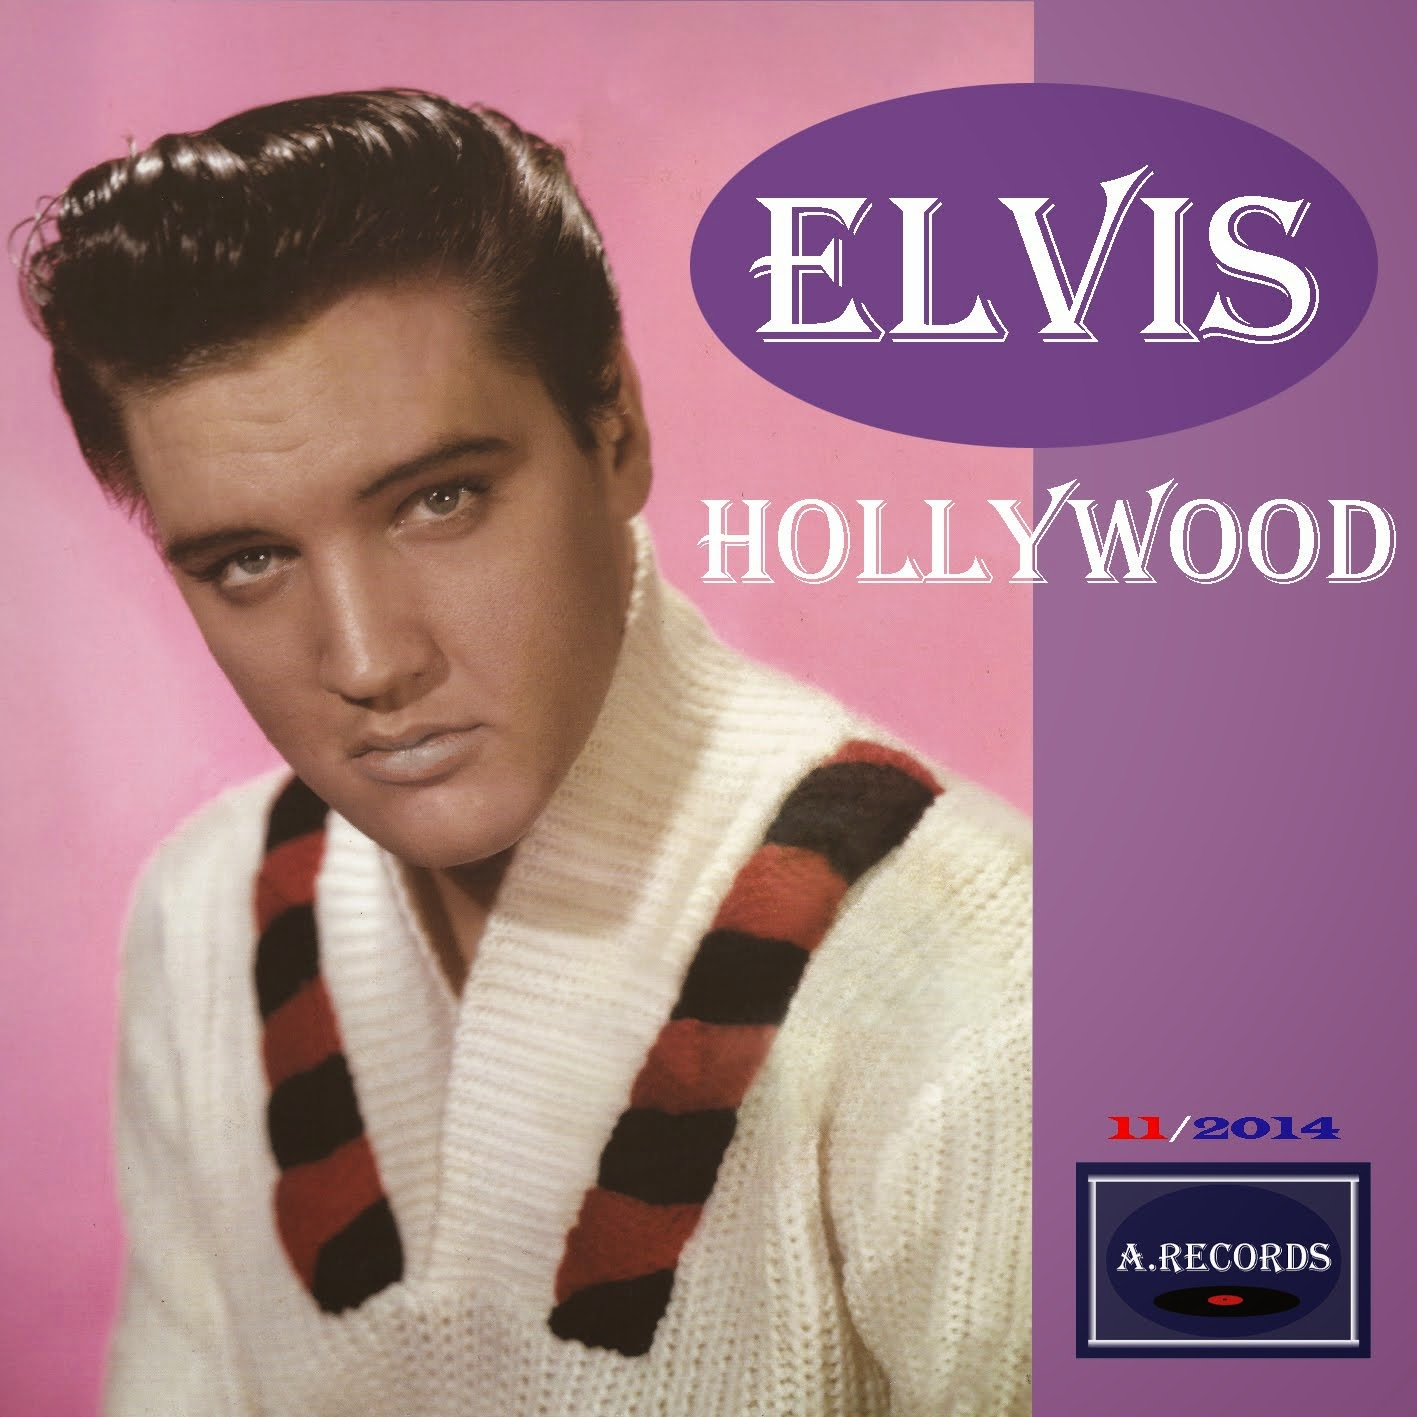 Elvis Hollywood (November 2014)